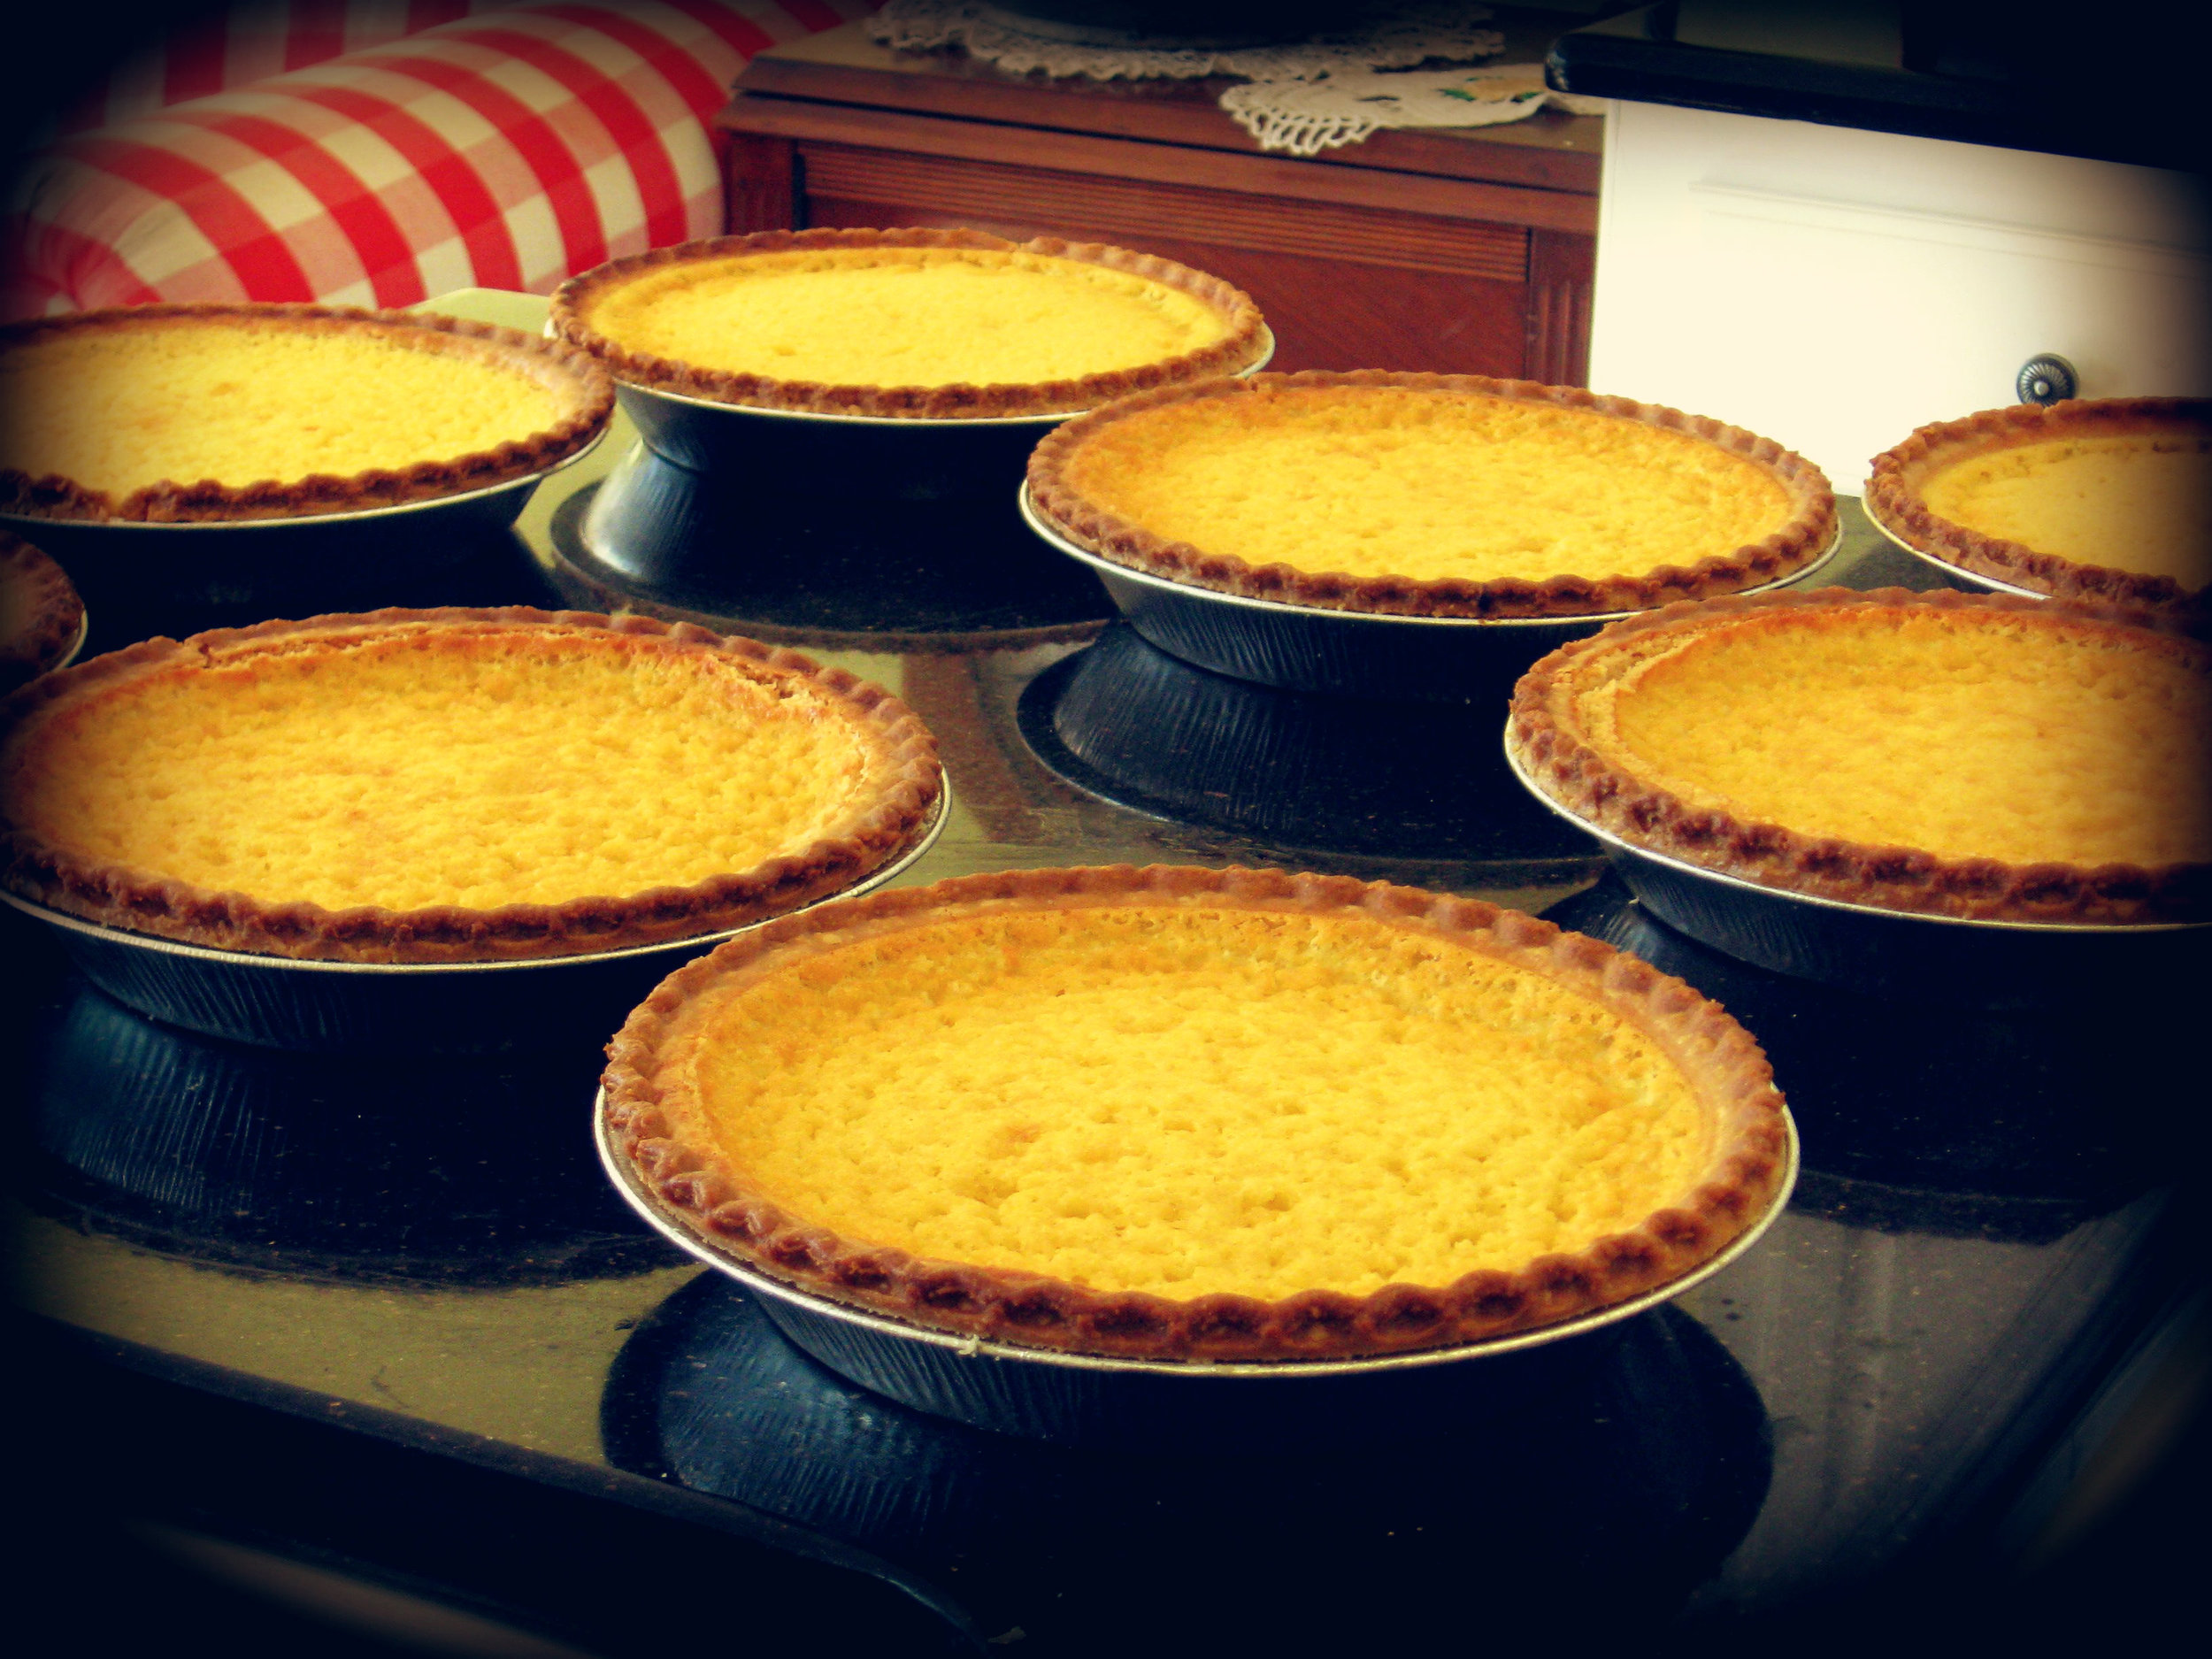 buttermilk pies.jpg